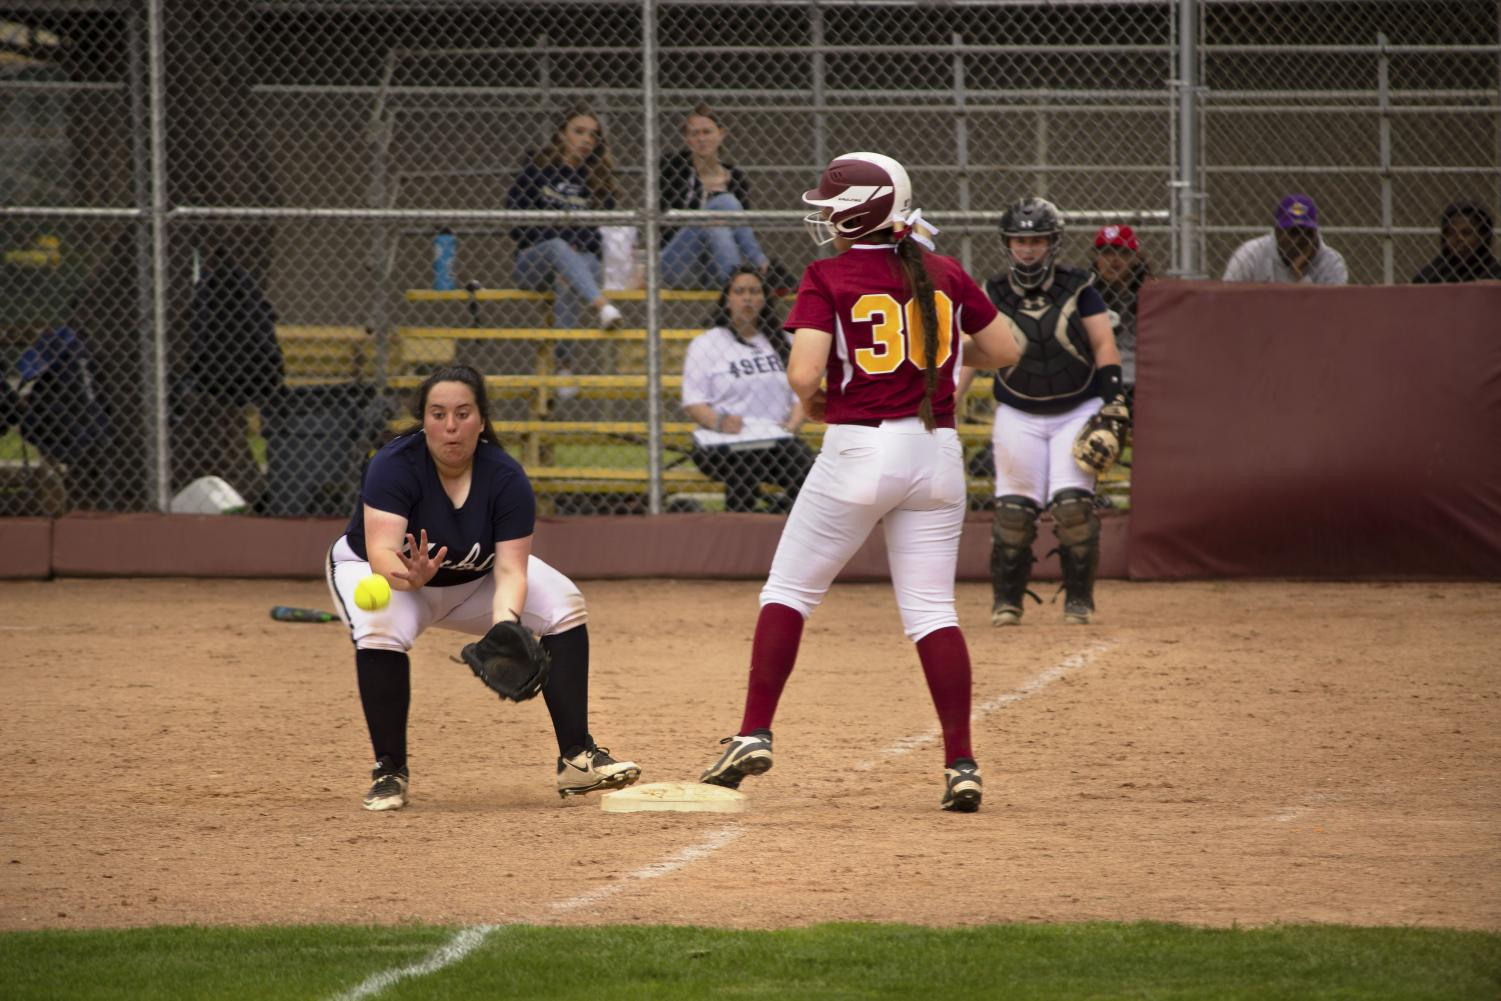 LMC's Alexus Coleman advances from second to third base during her team's 9-0 win over Yuba College March 19.